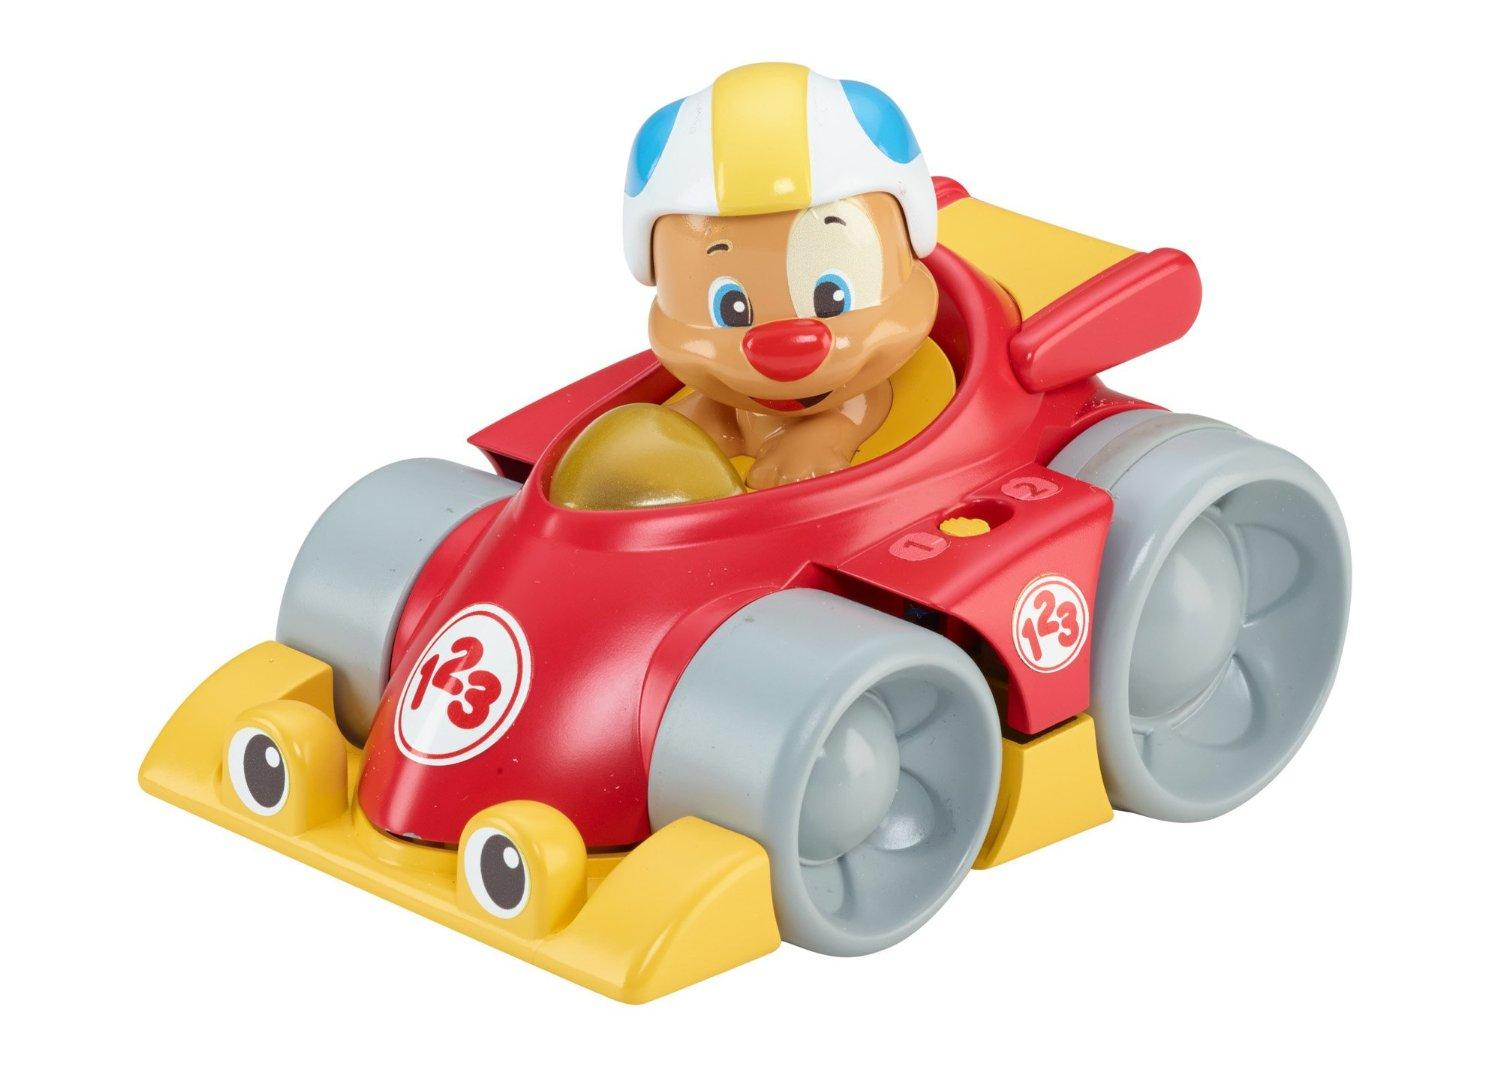 Fisher-Price Laugh & Learn 3-in-1 Smart Car - Fisher-Price UK  |Fisher Price Laugh And Learn Cars